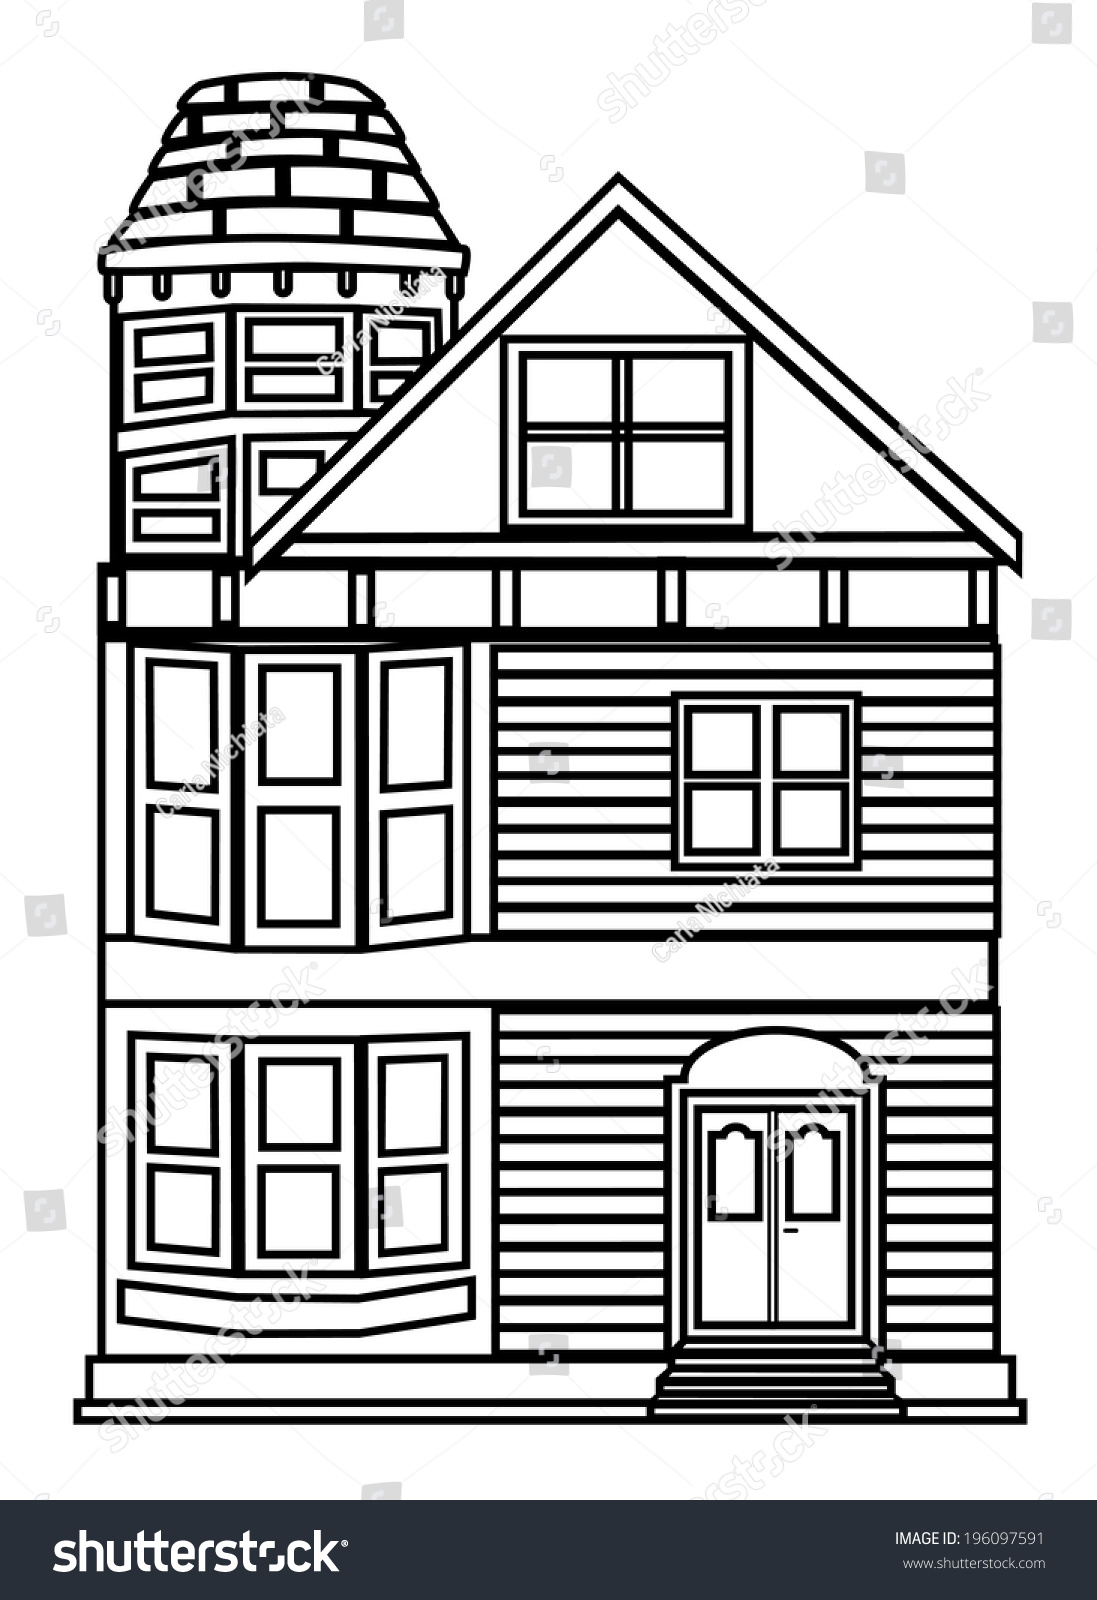 House outline picture - House Outline Vector